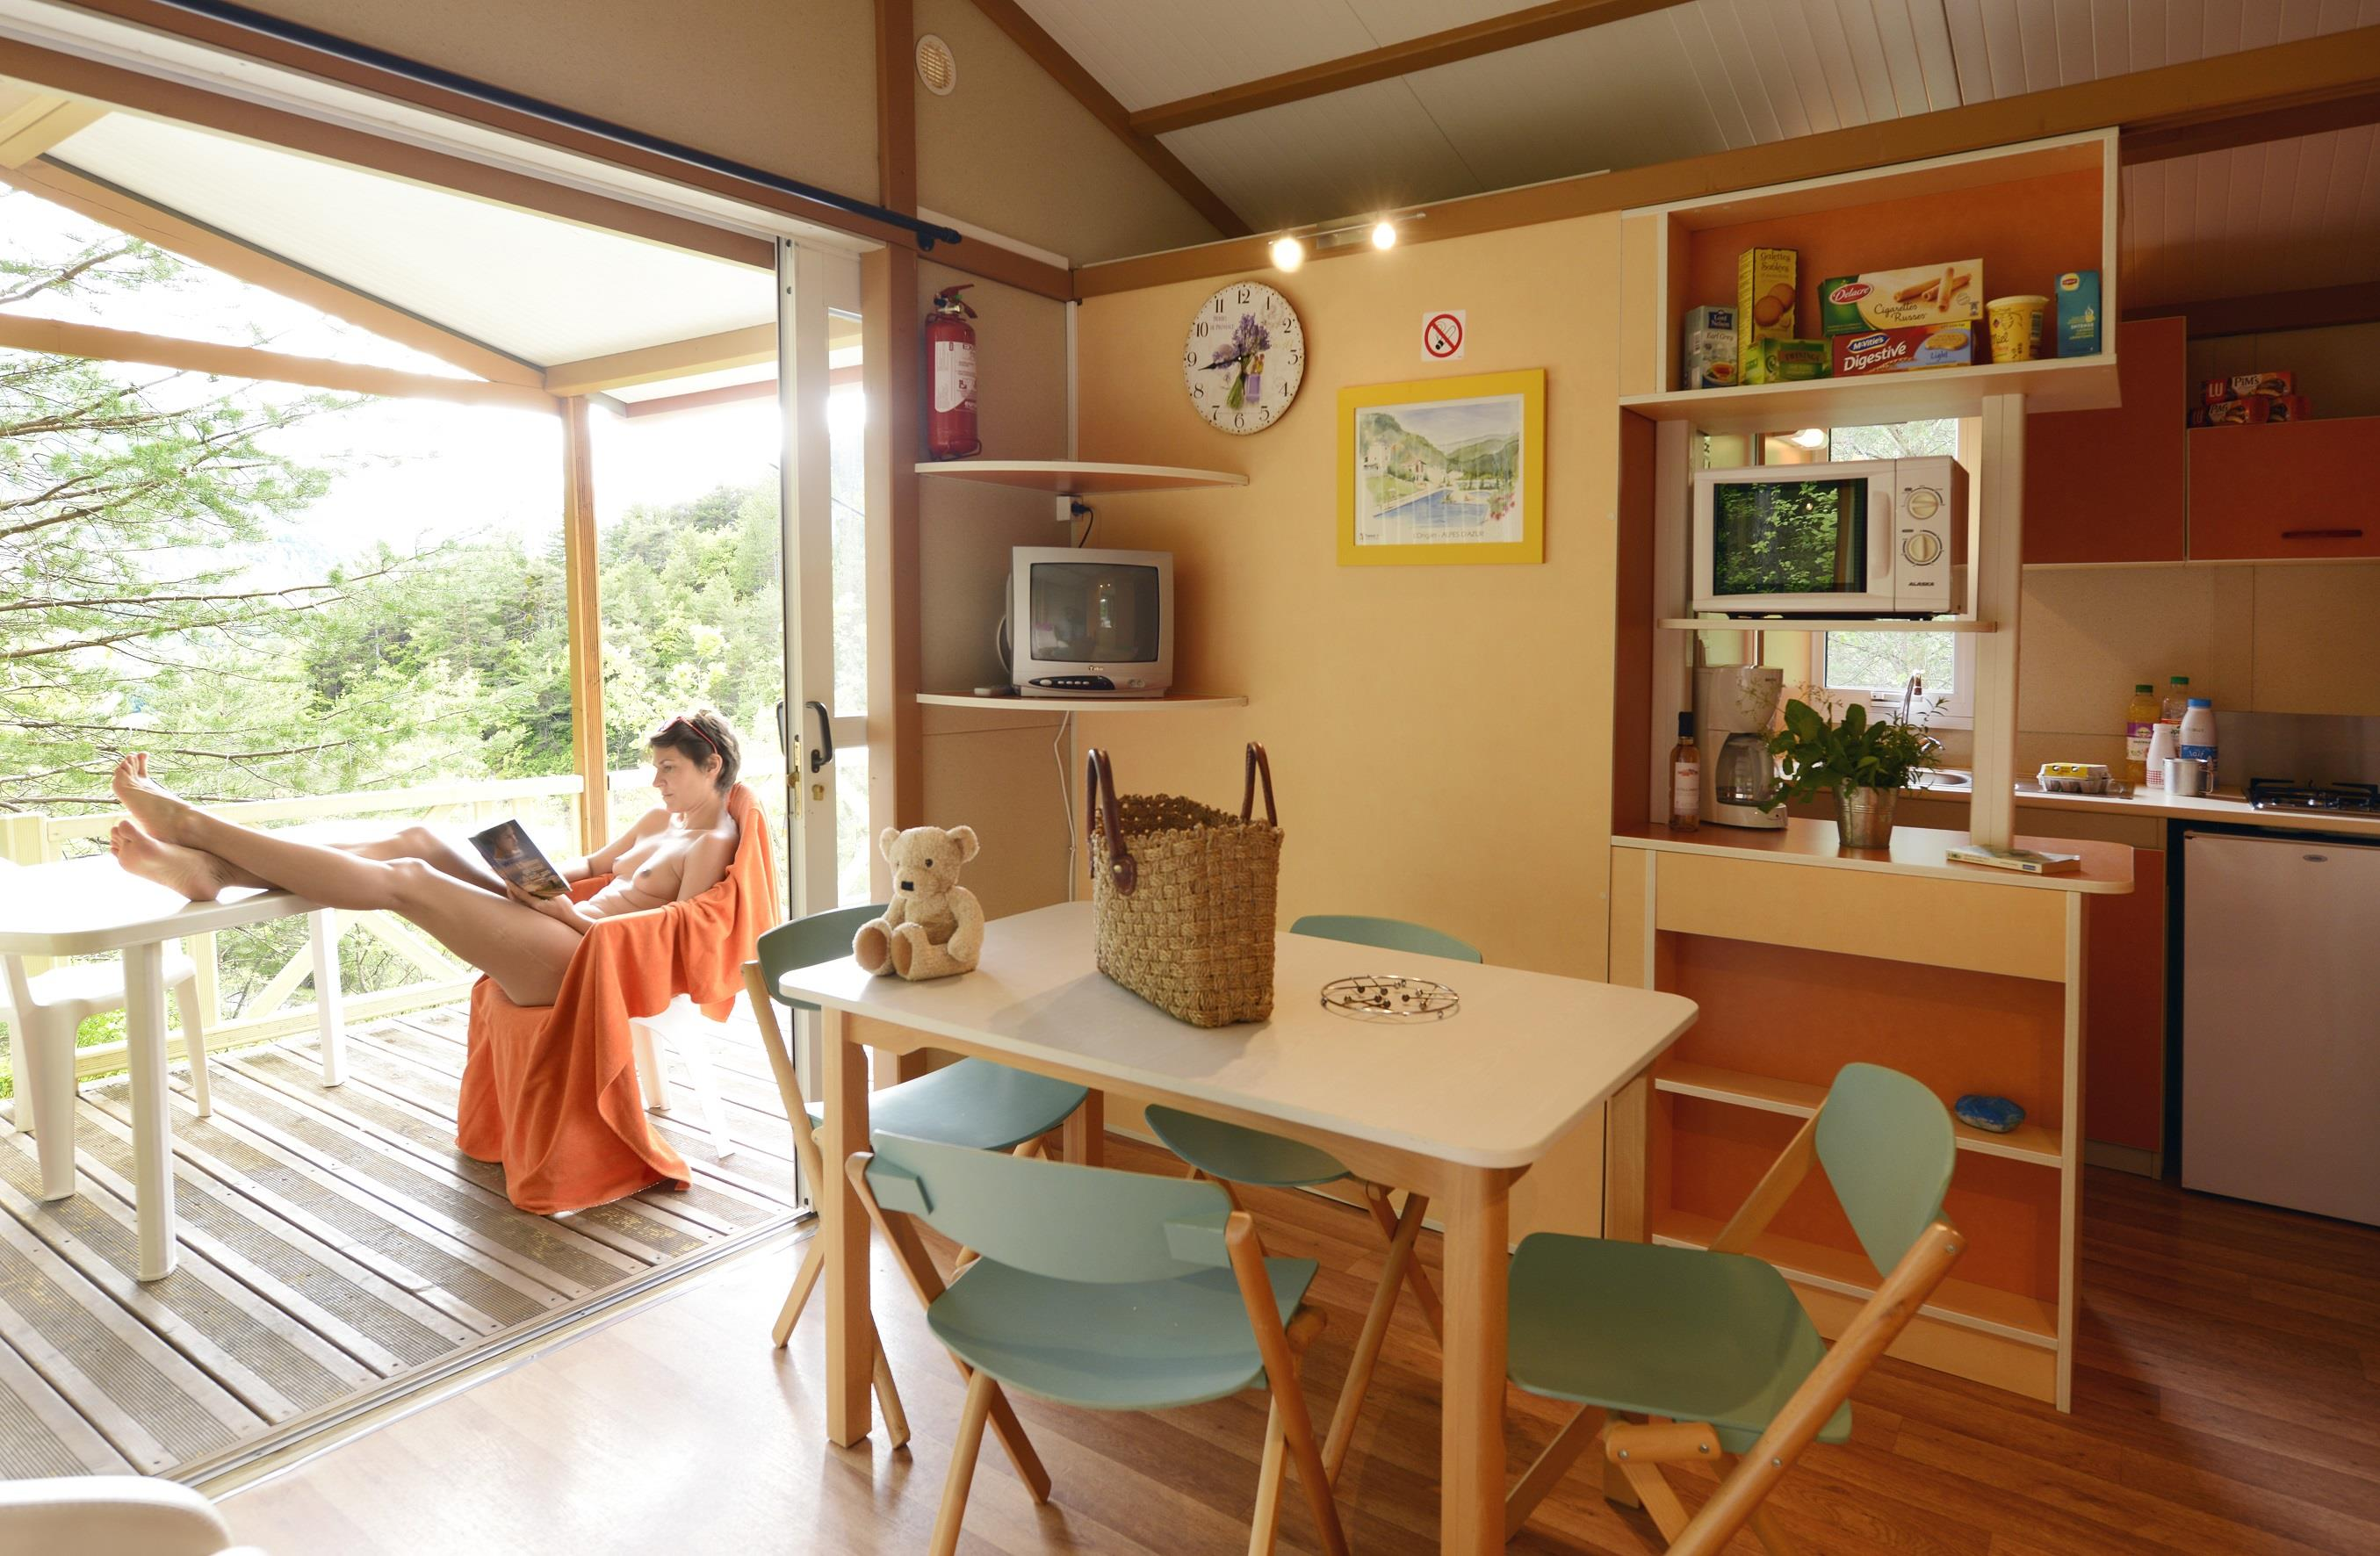 Location - Chalet Cigale - Camping Club Origan Domaine Naturiste